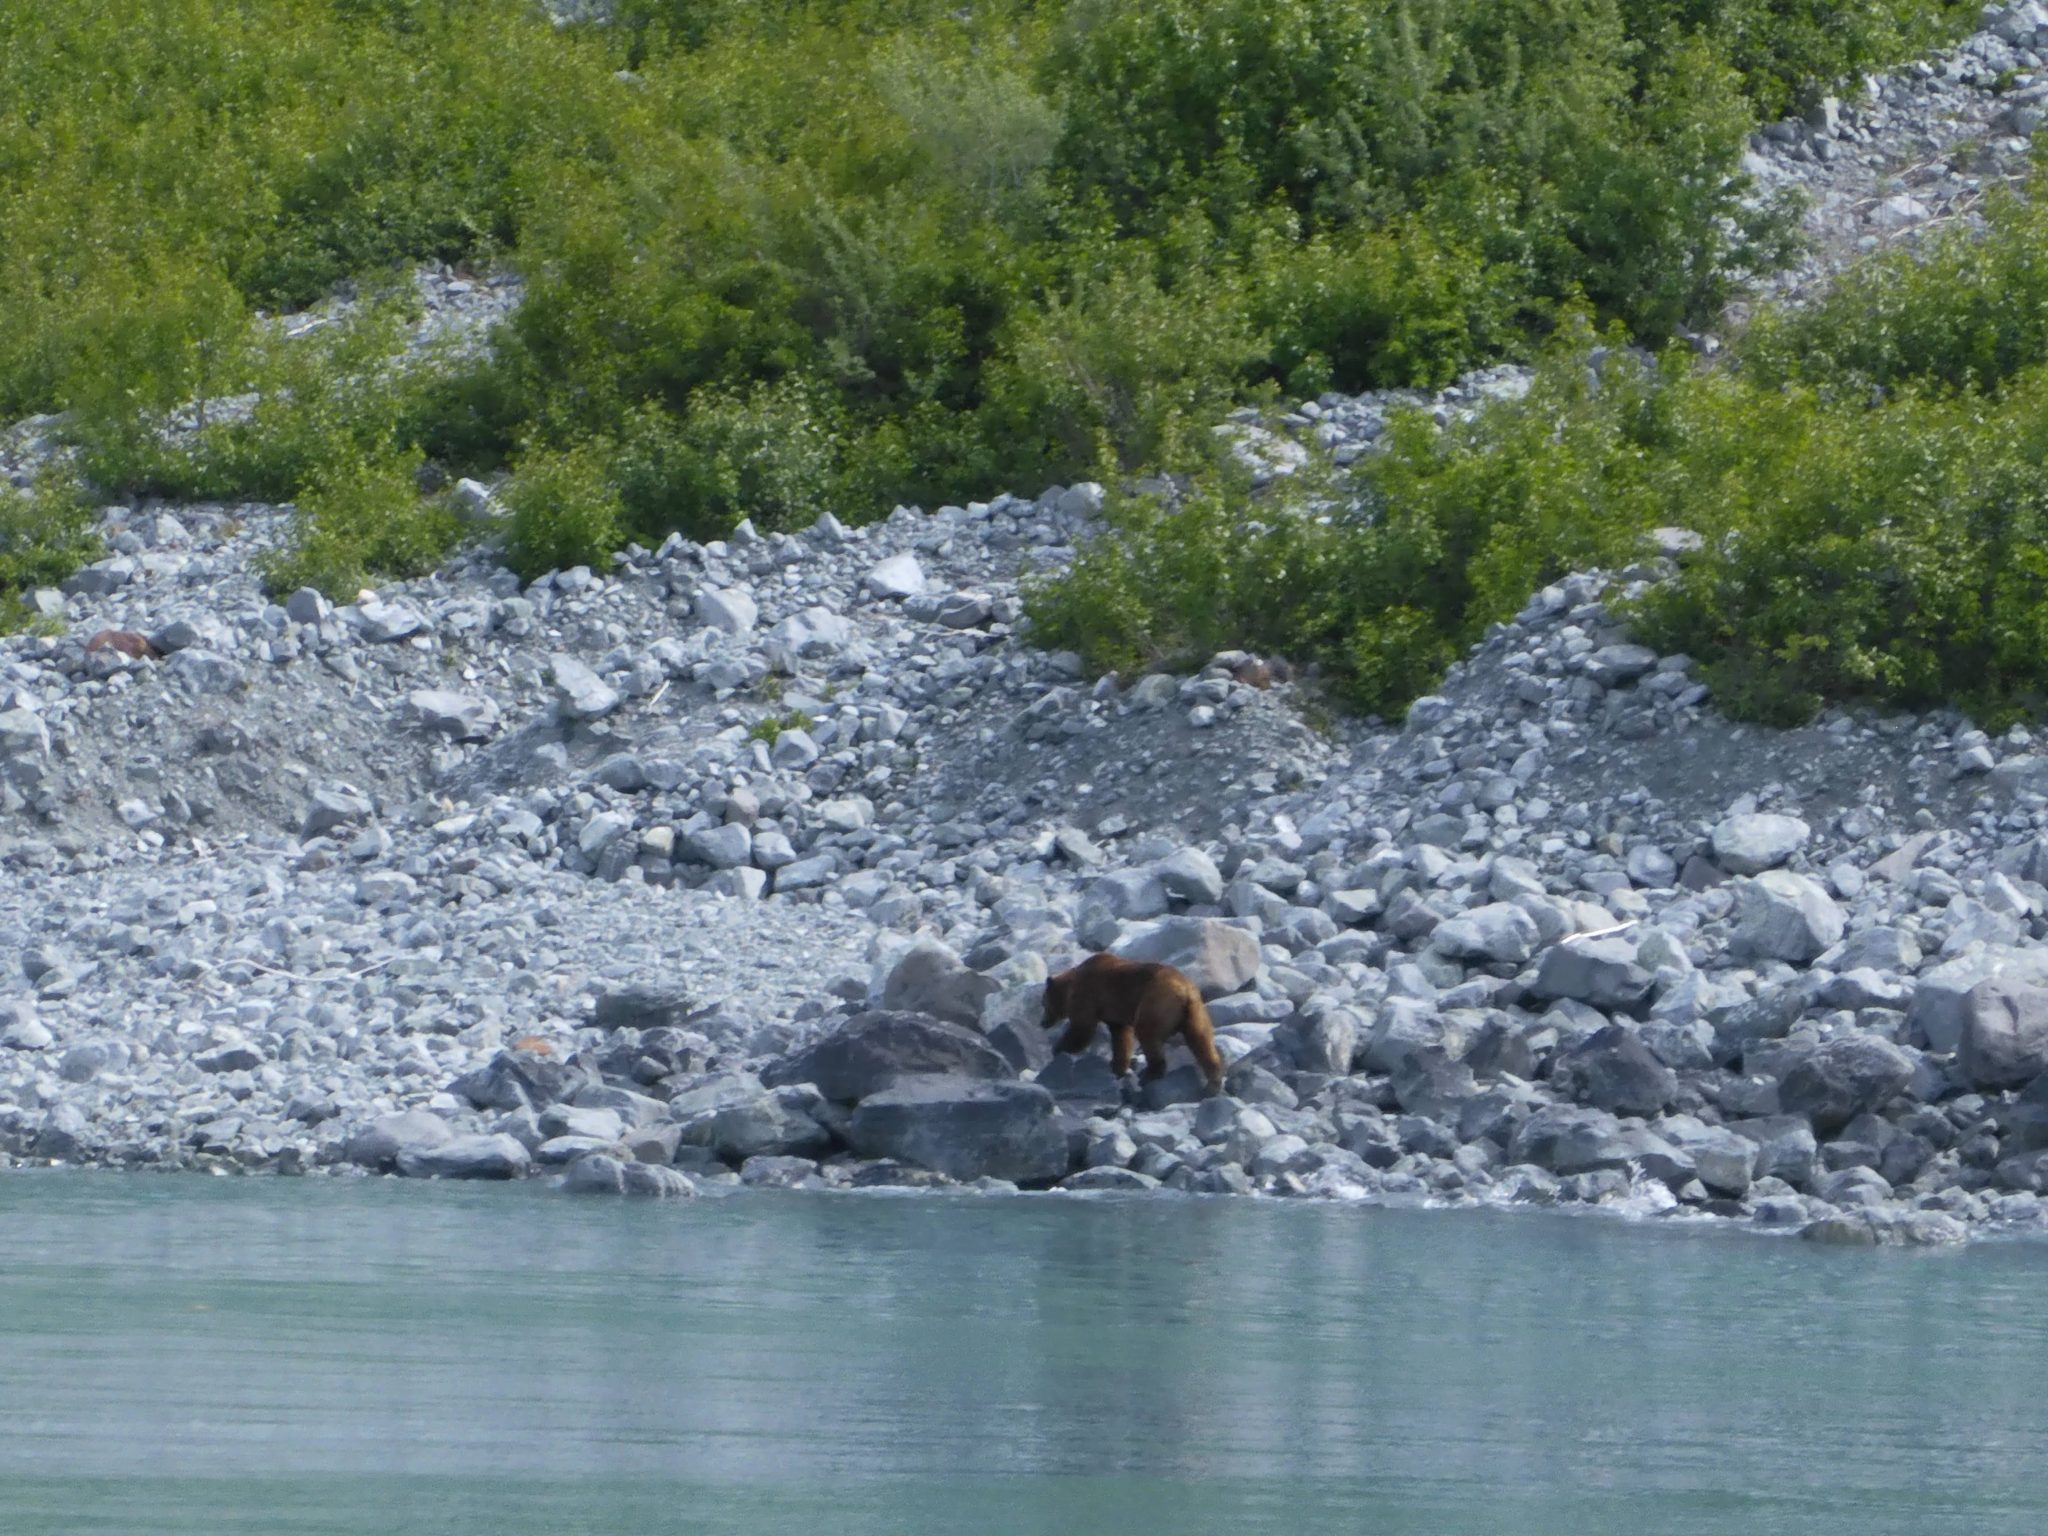 A brown bear walks the rocky shoreline next to the water of Glacier Bay. There are scrubby green shrubs above the bear and the gray rocks